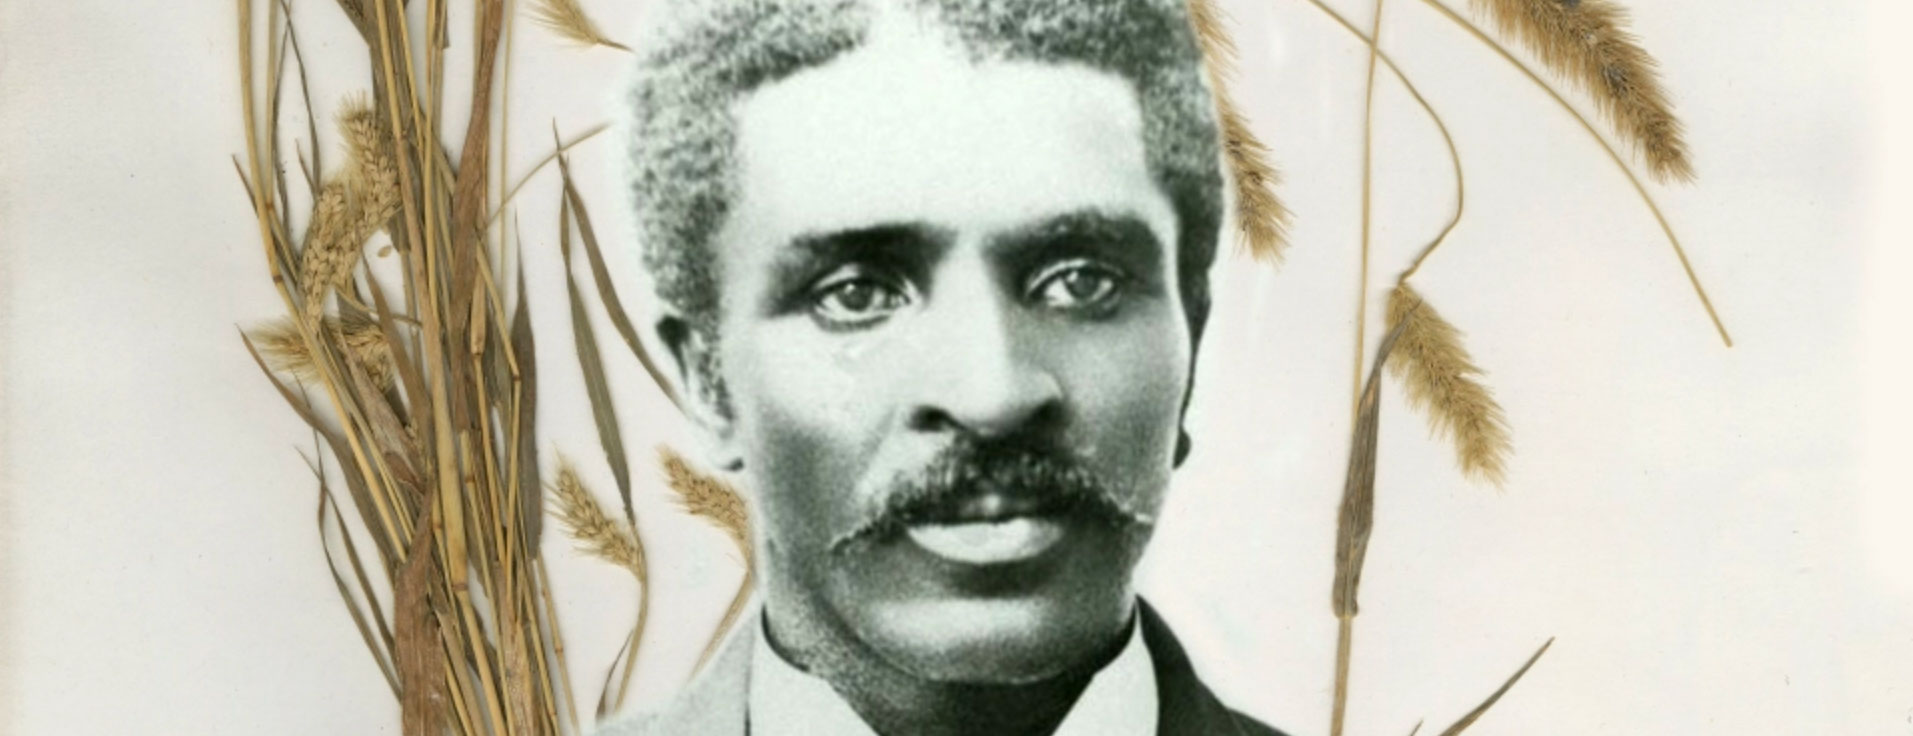 George Washington Carver portrait surrounded by grass specimens